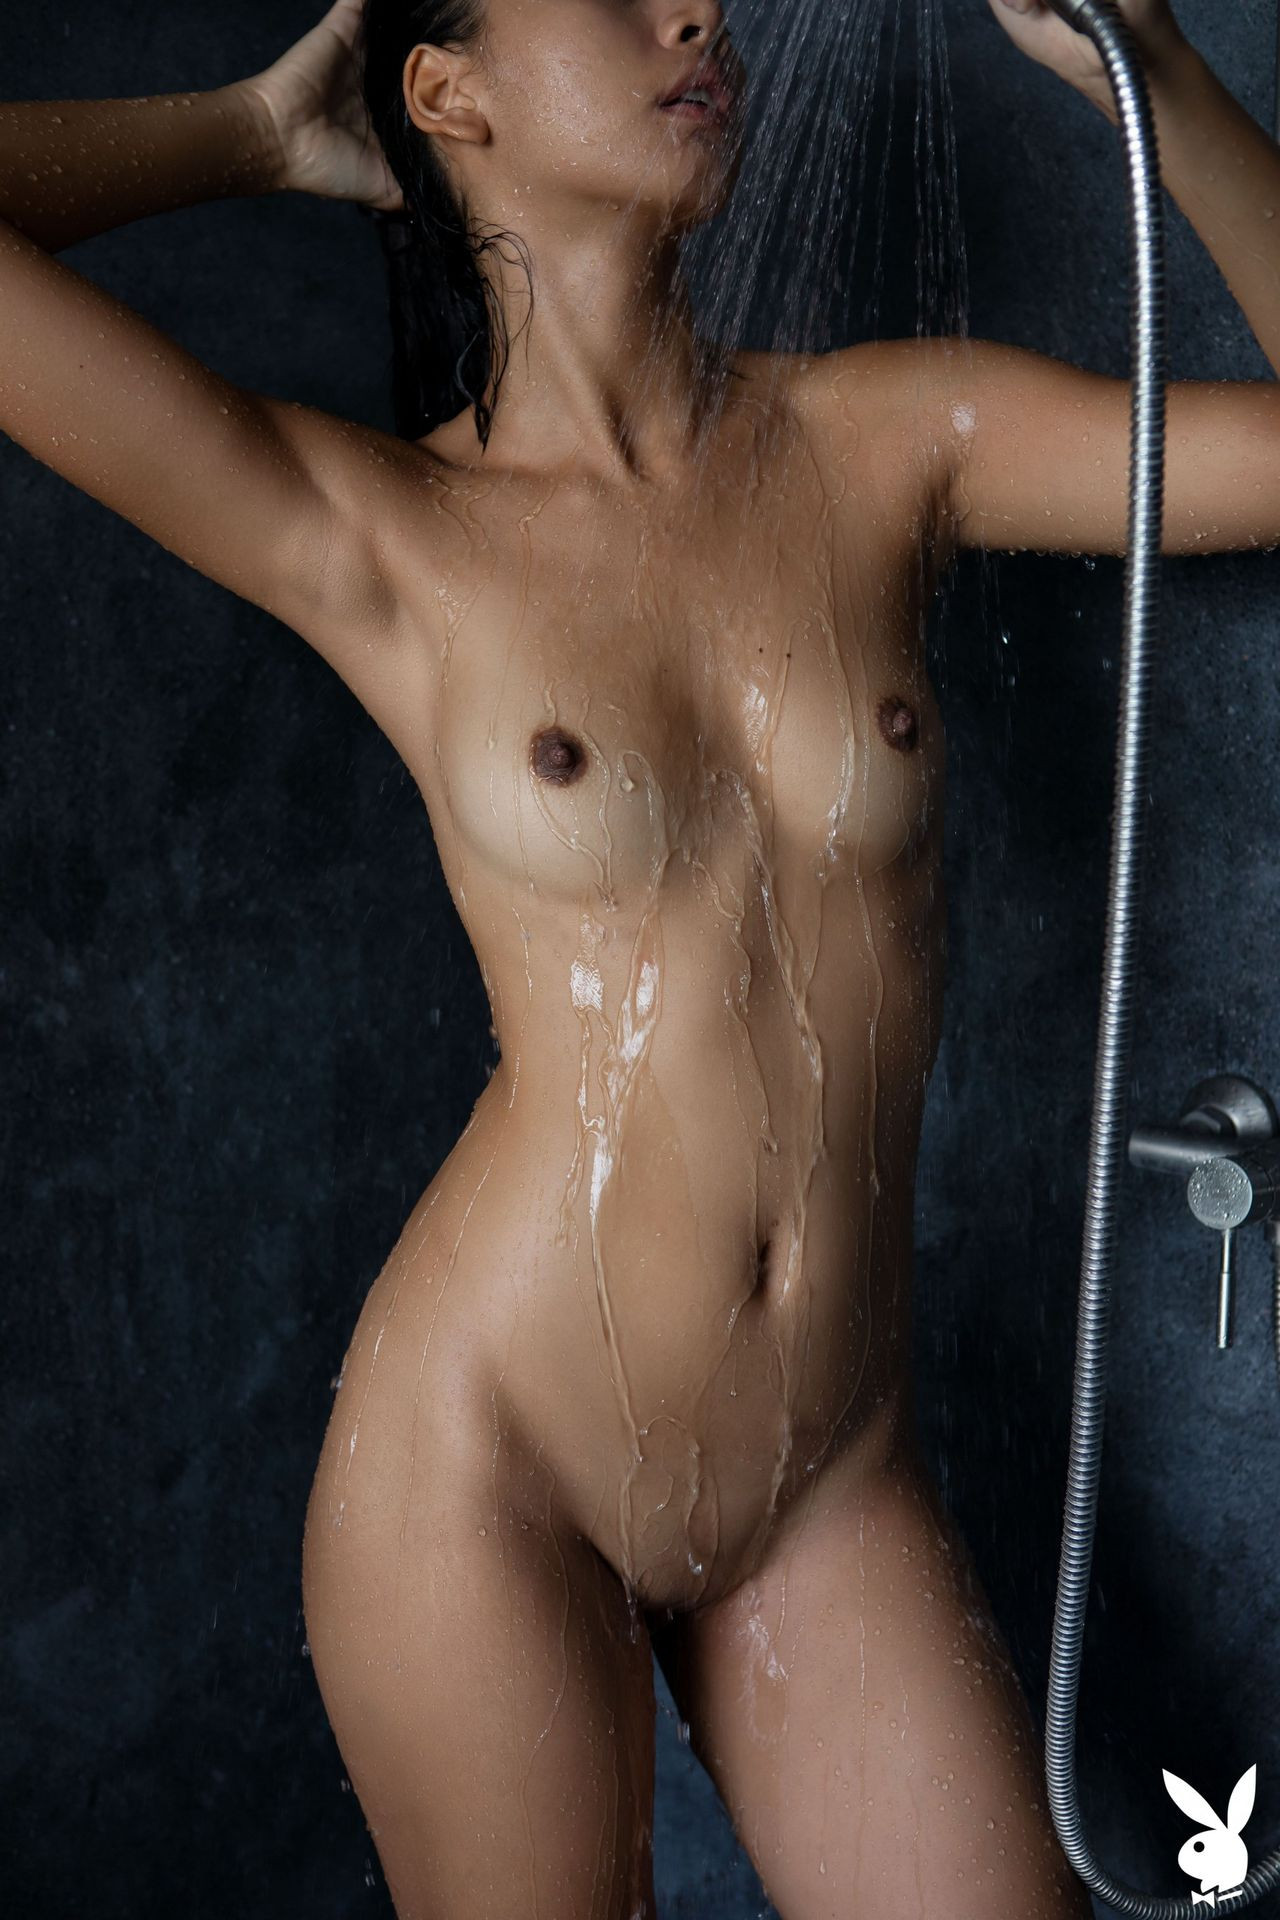 Cara Pin Nude Soft Shower thefappening.nu 23